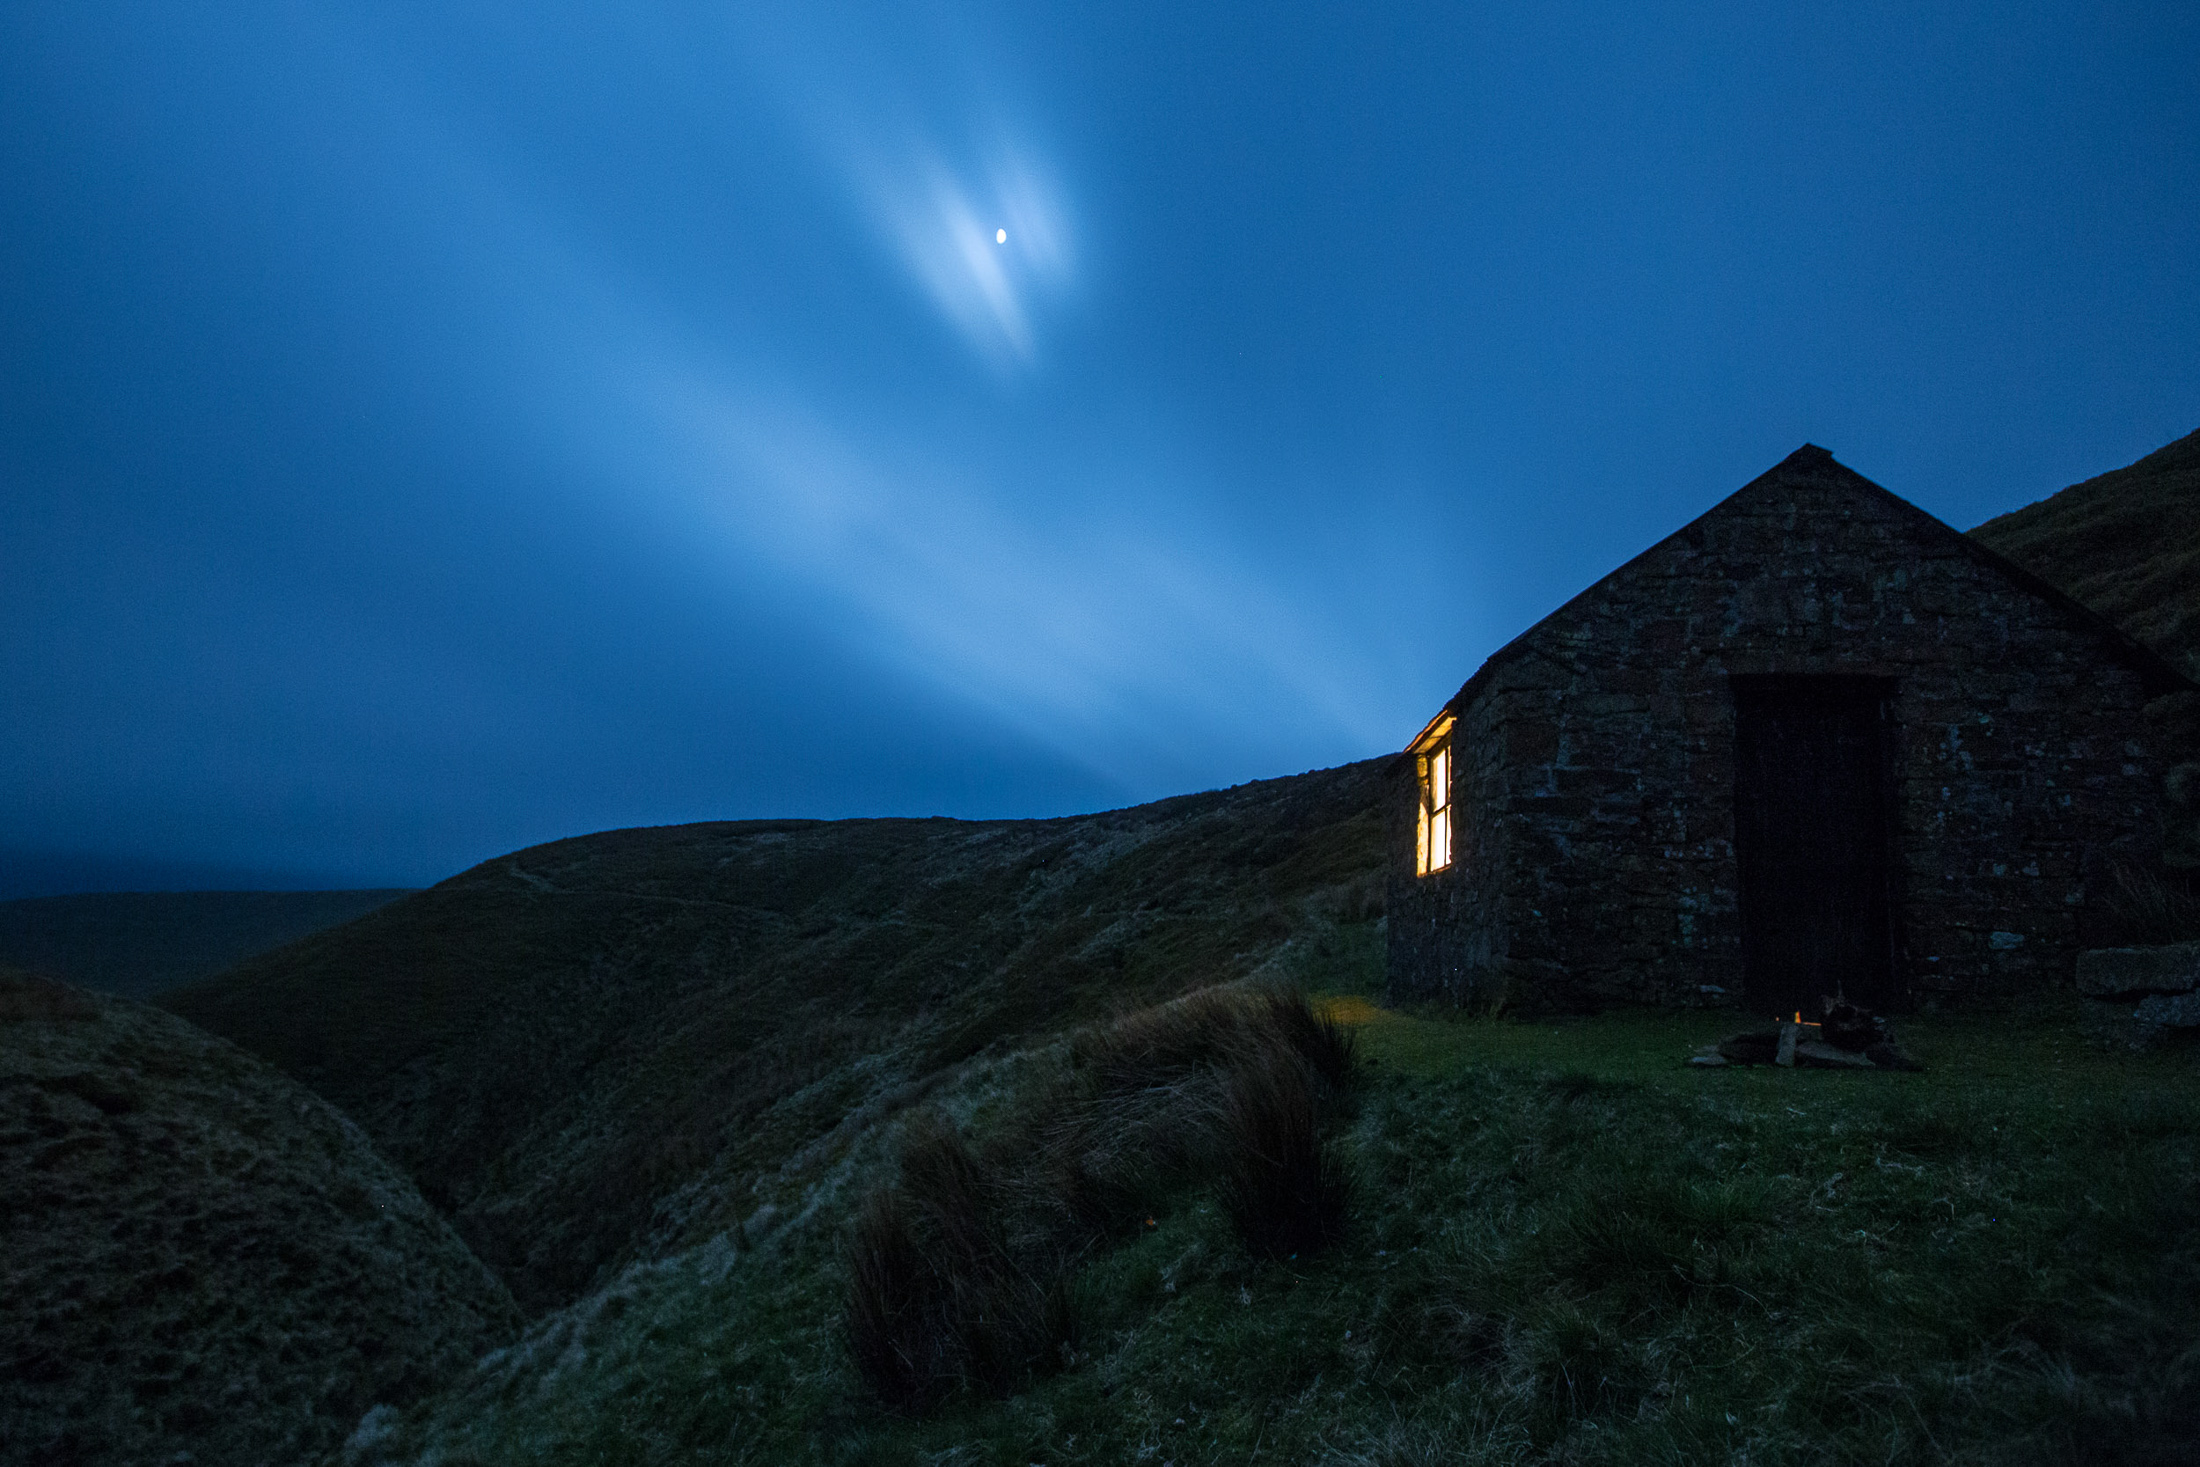 Our humble abode, as night falls. © Alex Hyde 2017